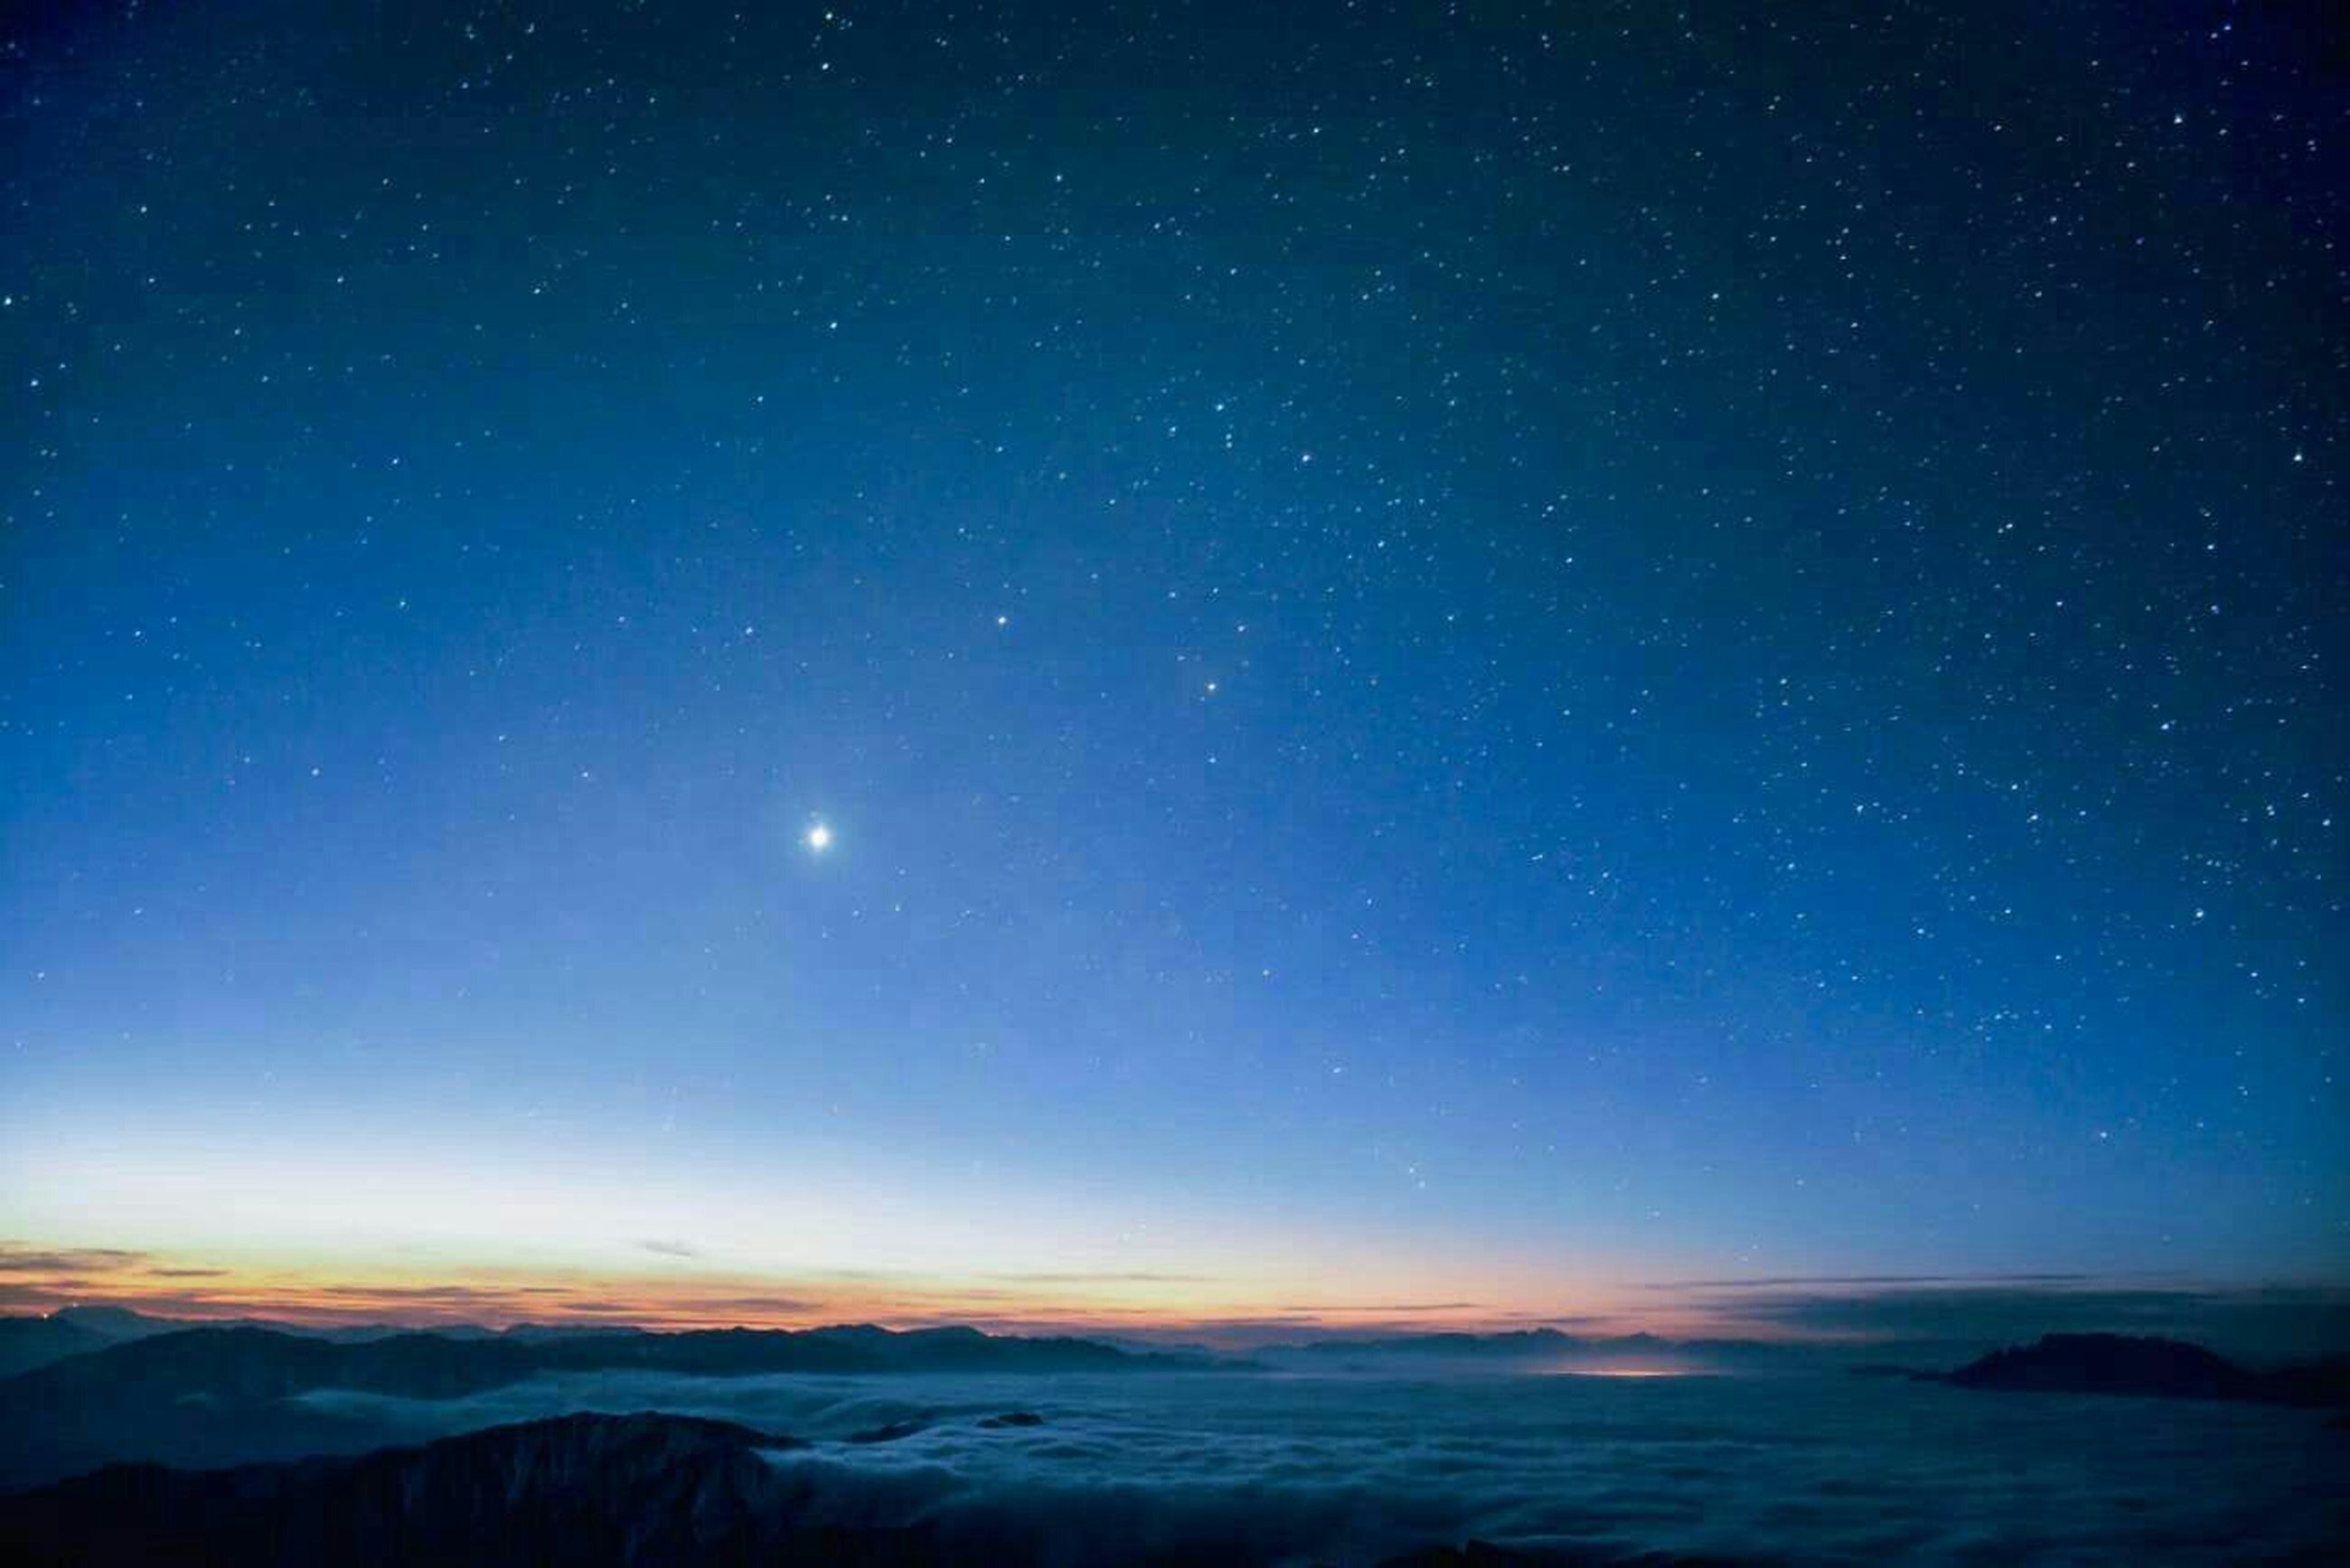 night, scenics, tranquil scene, beauty in nature, tranquility, star - space, astronomy, star field, sky, space, nature, star, galaxy, idyllic, majestic, landscape, infinity, snow, mountain, moon